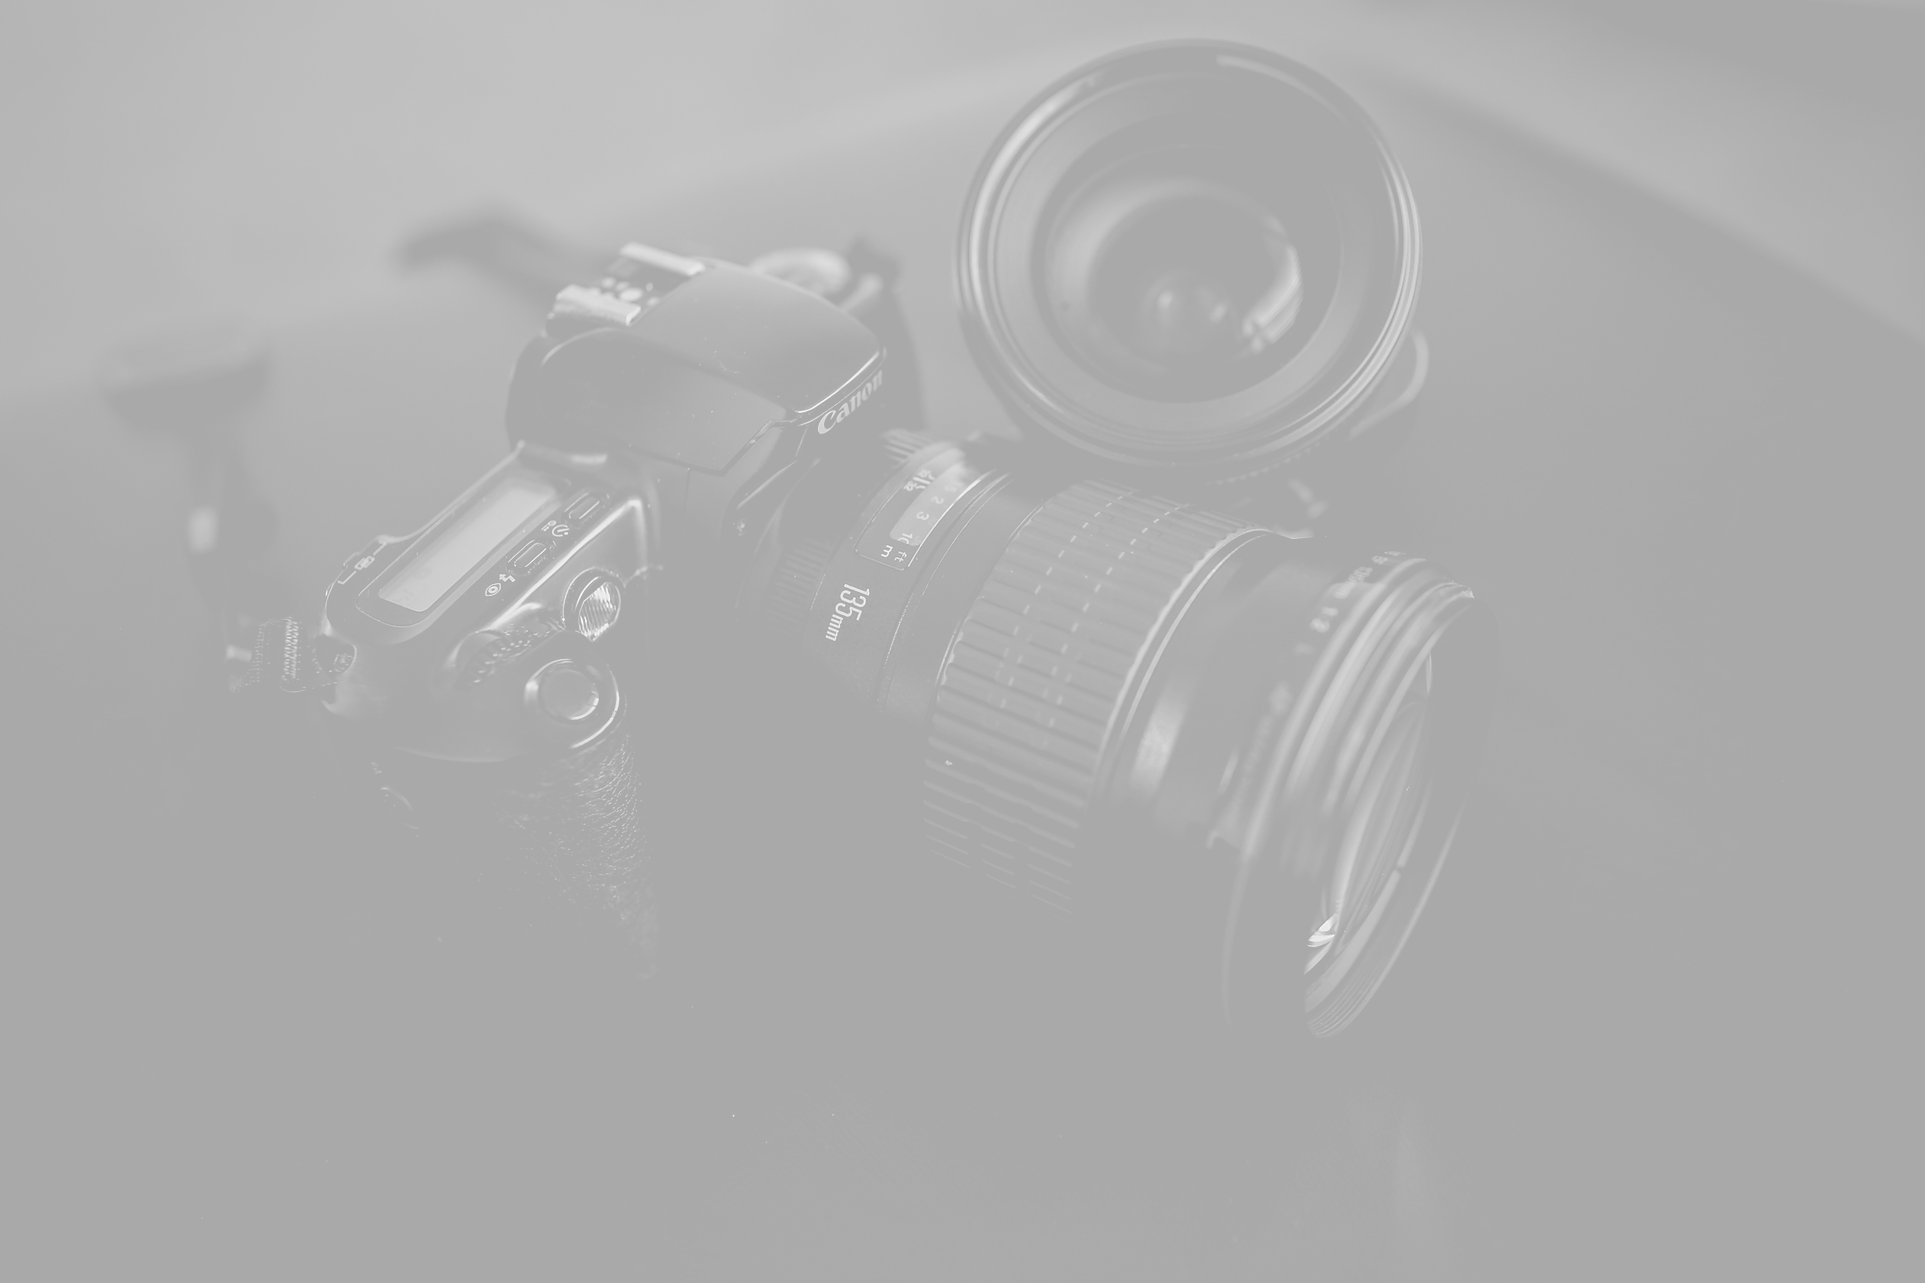 Canon%20camera%20135mm%20lens_edited.png